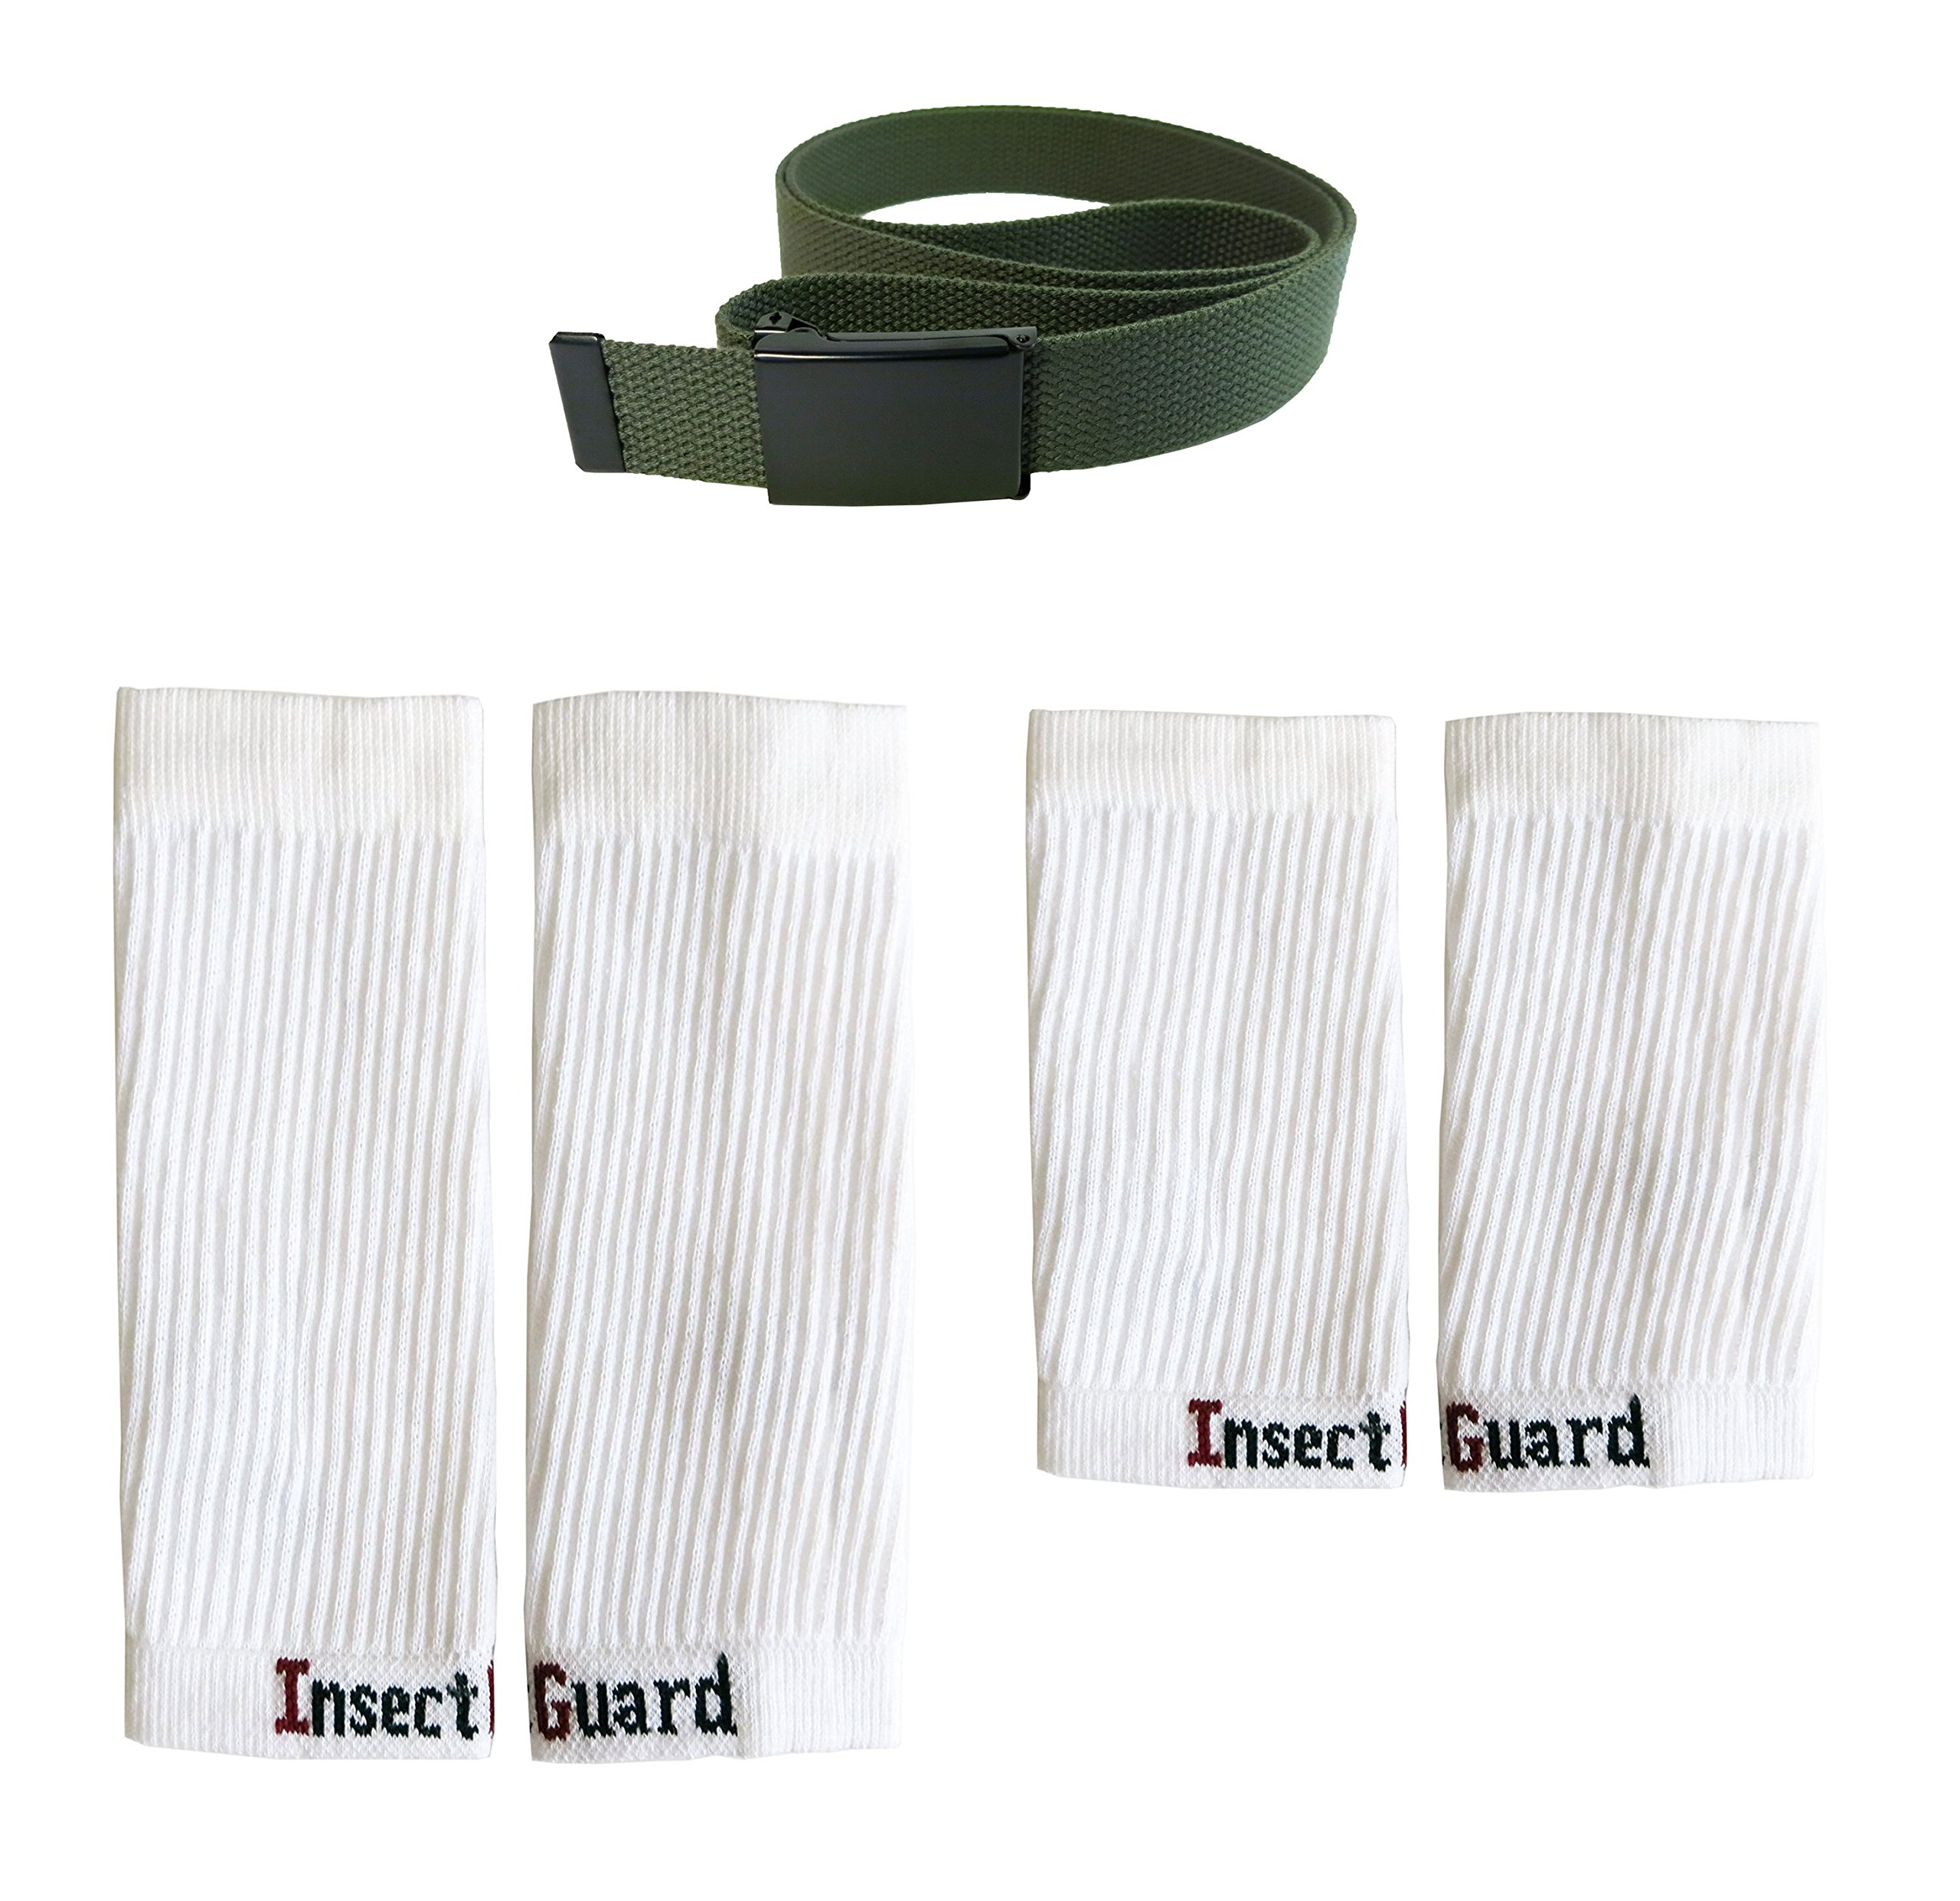 InsectGuard Permethrin Treated Tick & Mosquitoes Insect Repellent Complete Package 3 - Extra Wide (Green/White XW) Fits Adult Large to 2XL